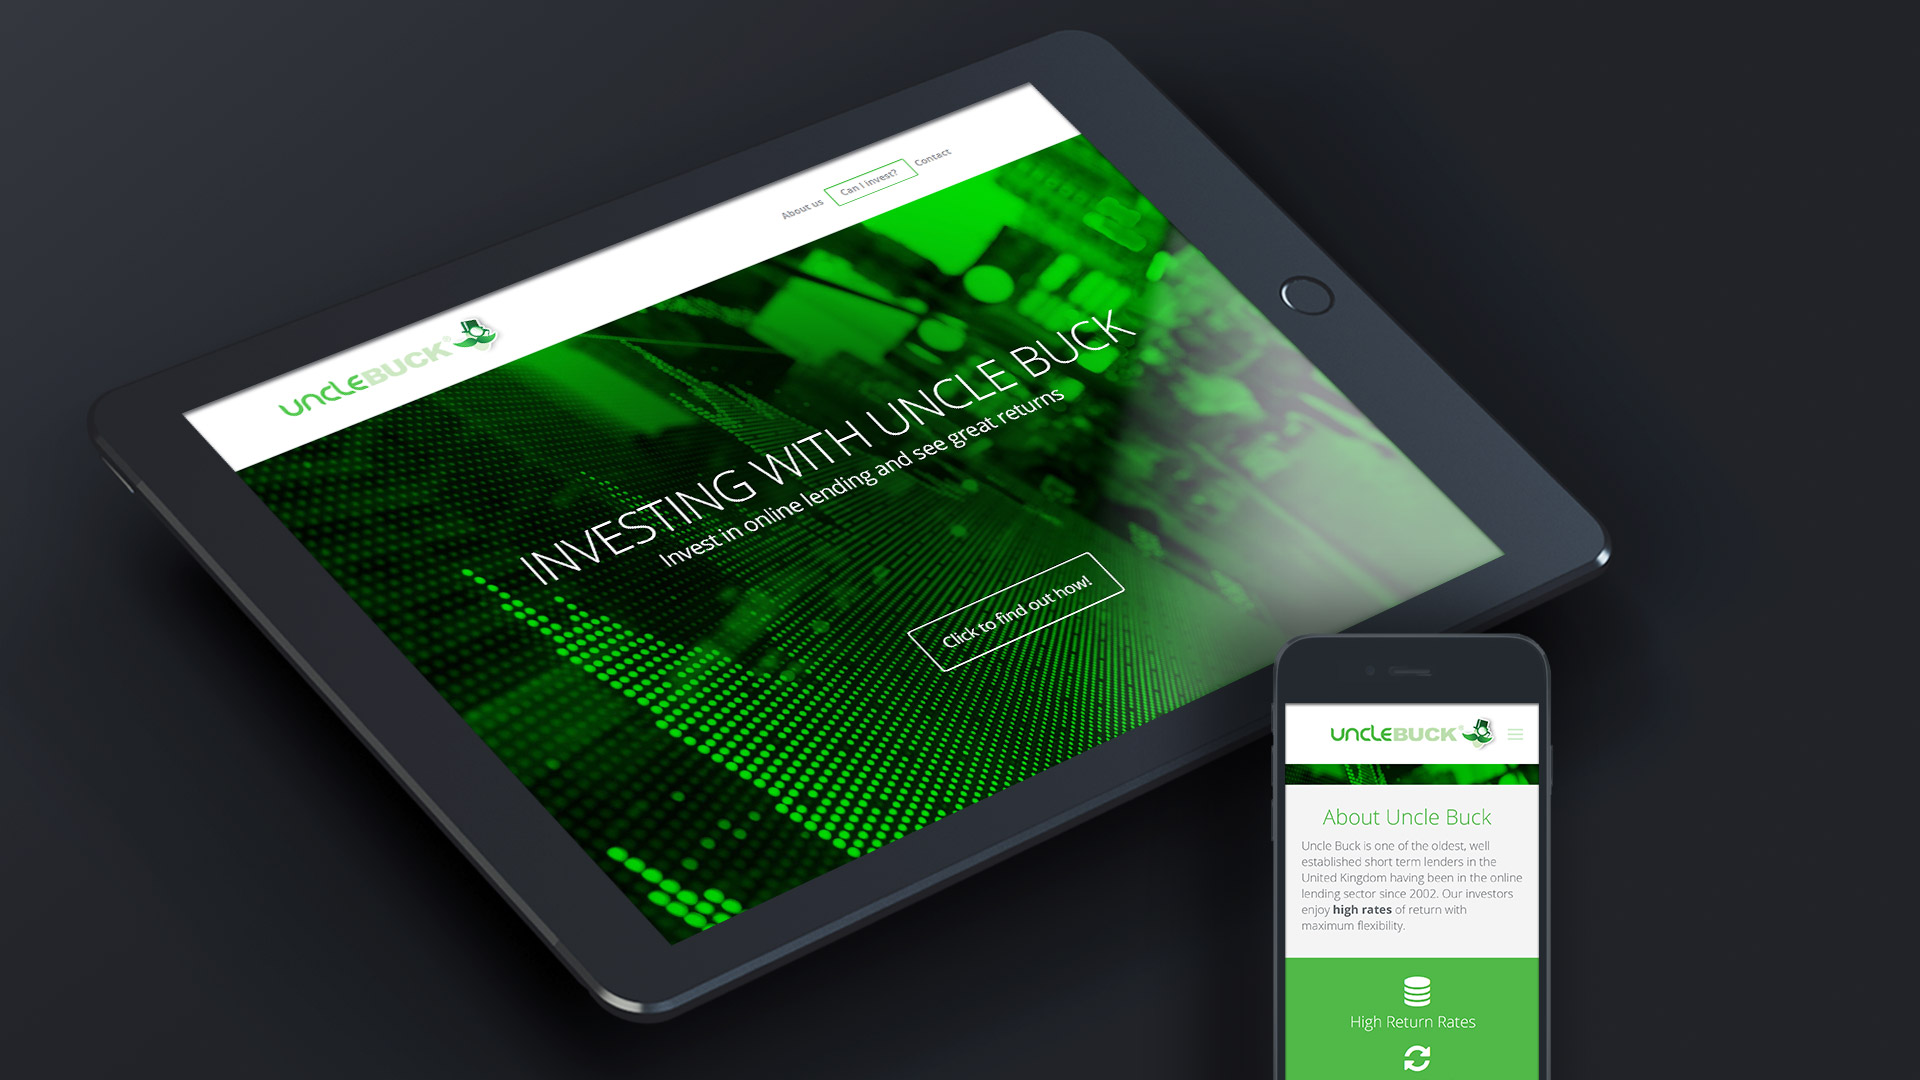 investor web site design